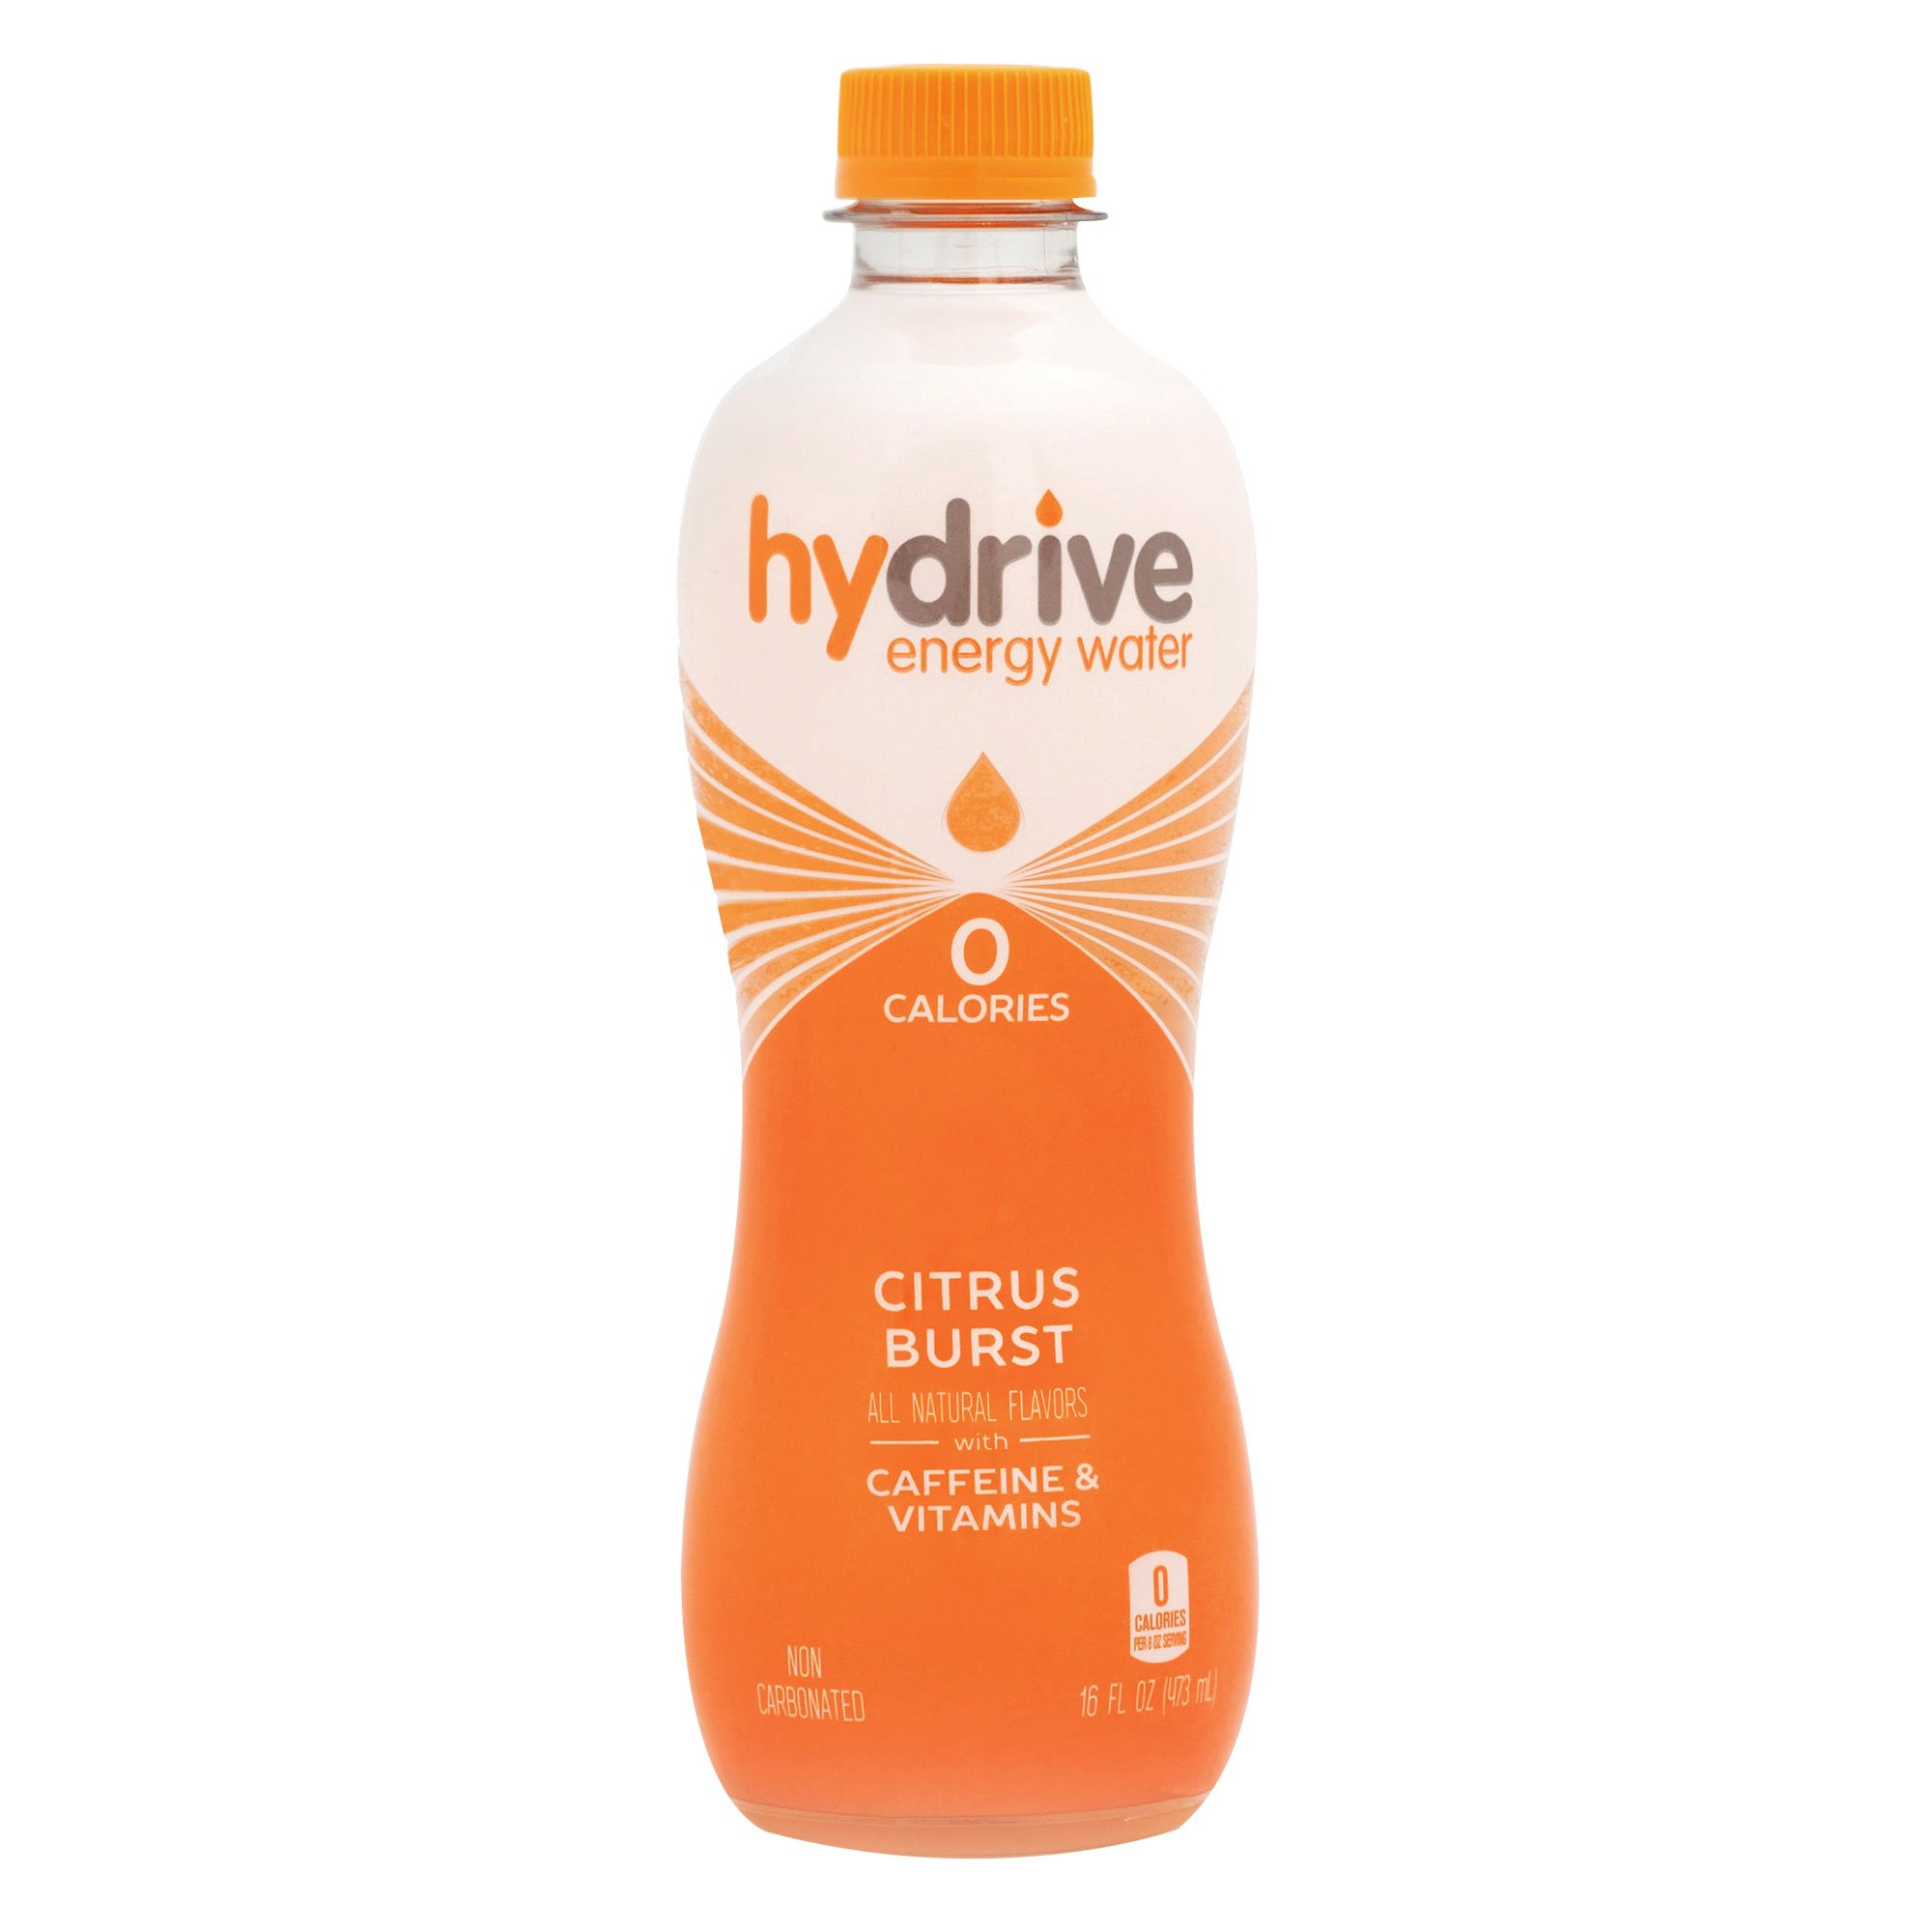 Hydrive Energy Water | Citrus Burst | Sugar Free | Zero Calories | All Natural Flavors | Natural Energy | 16 oz (Pack of 12)